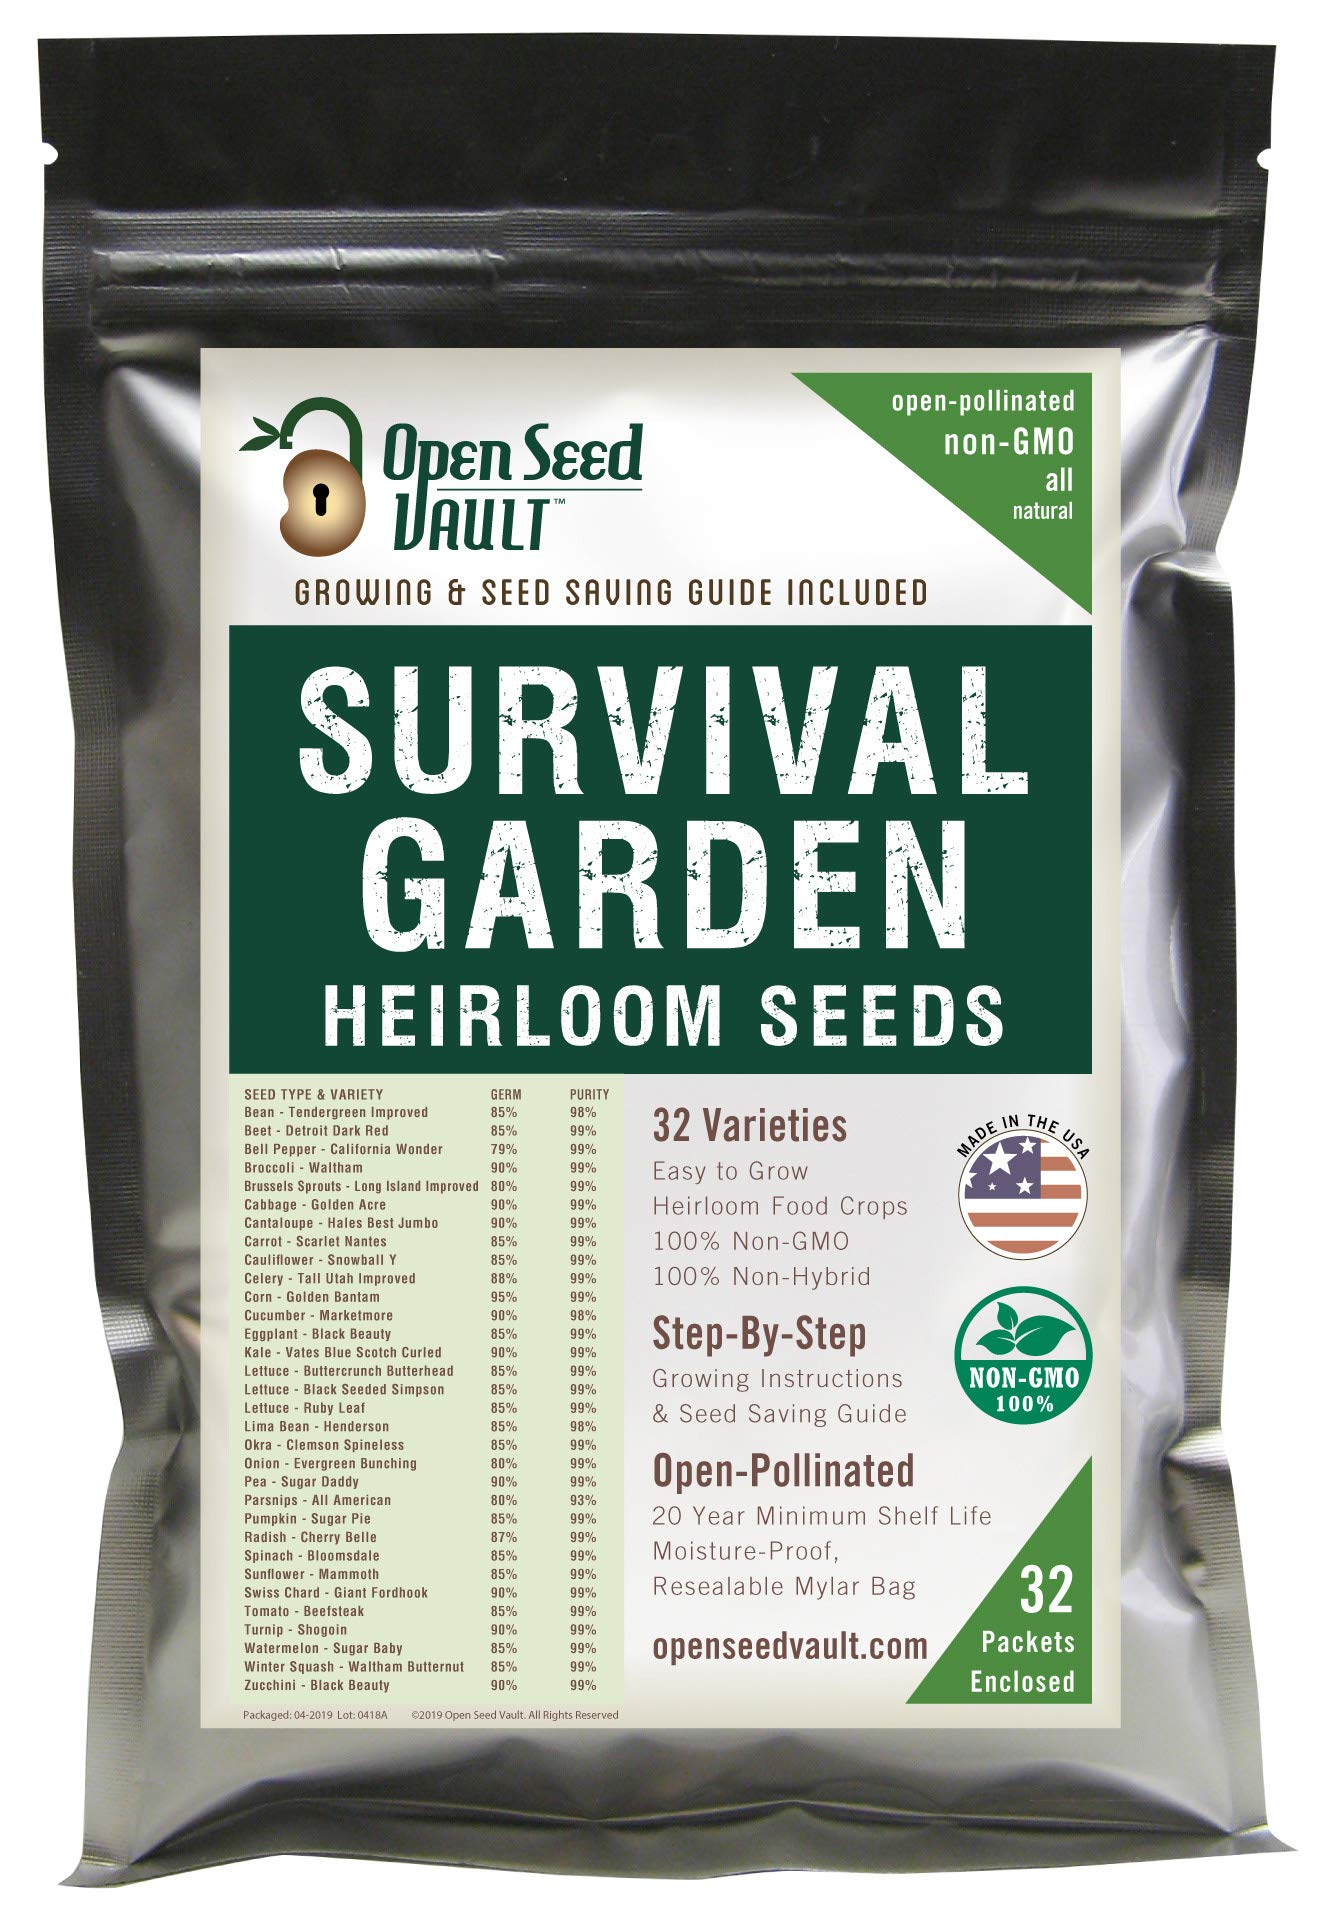 15,000+ Non-gmo Heirloom Vegetable Seeds 32 Variety Pack by Open Seed Vault product image